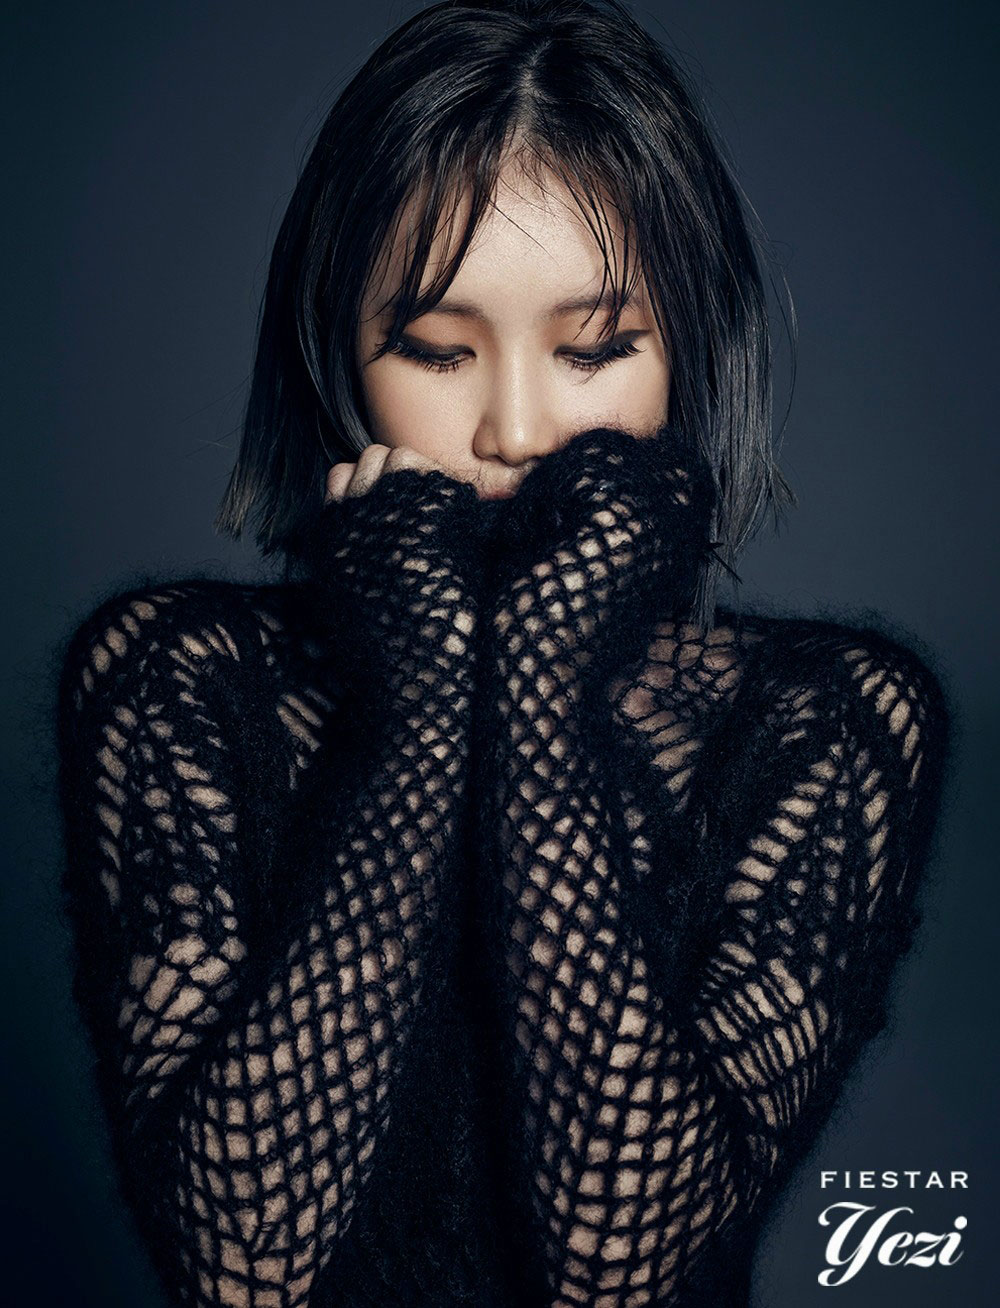 Fiestar Yezi Black Label mini album